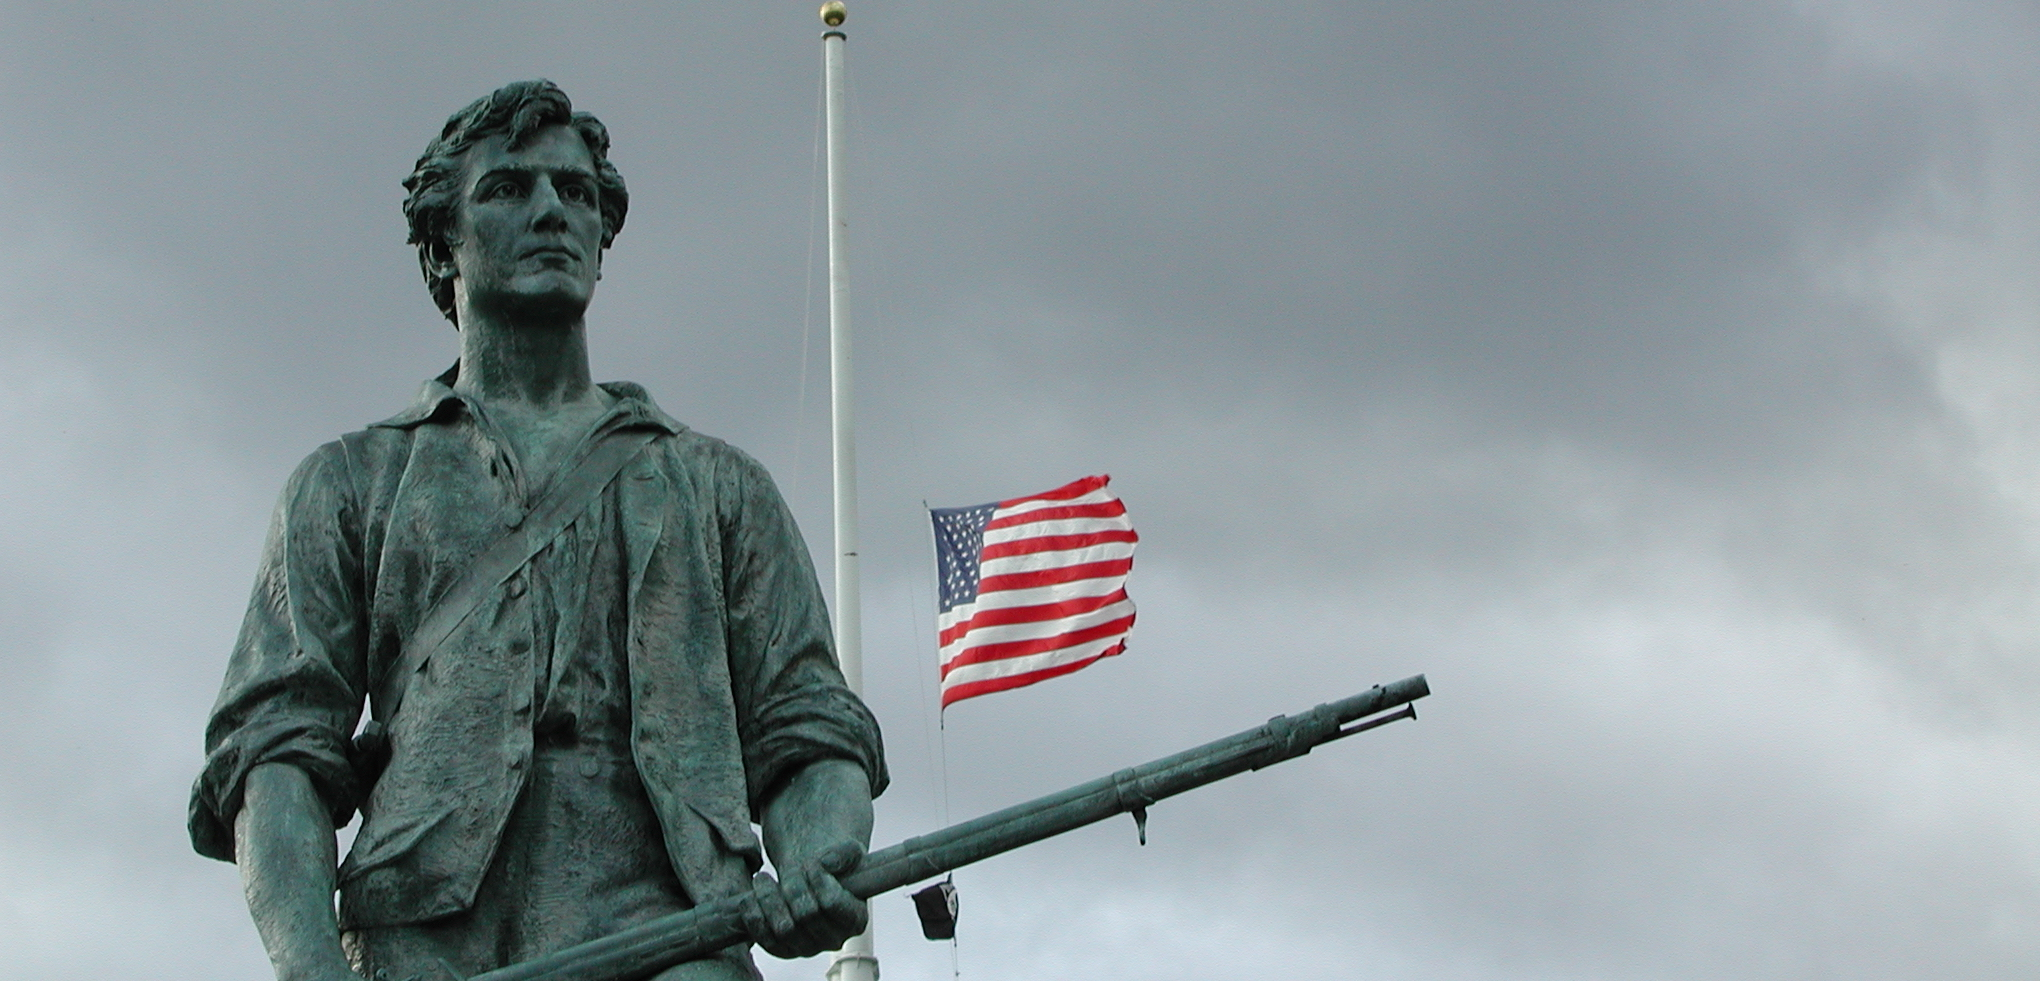 Minuteman with flag